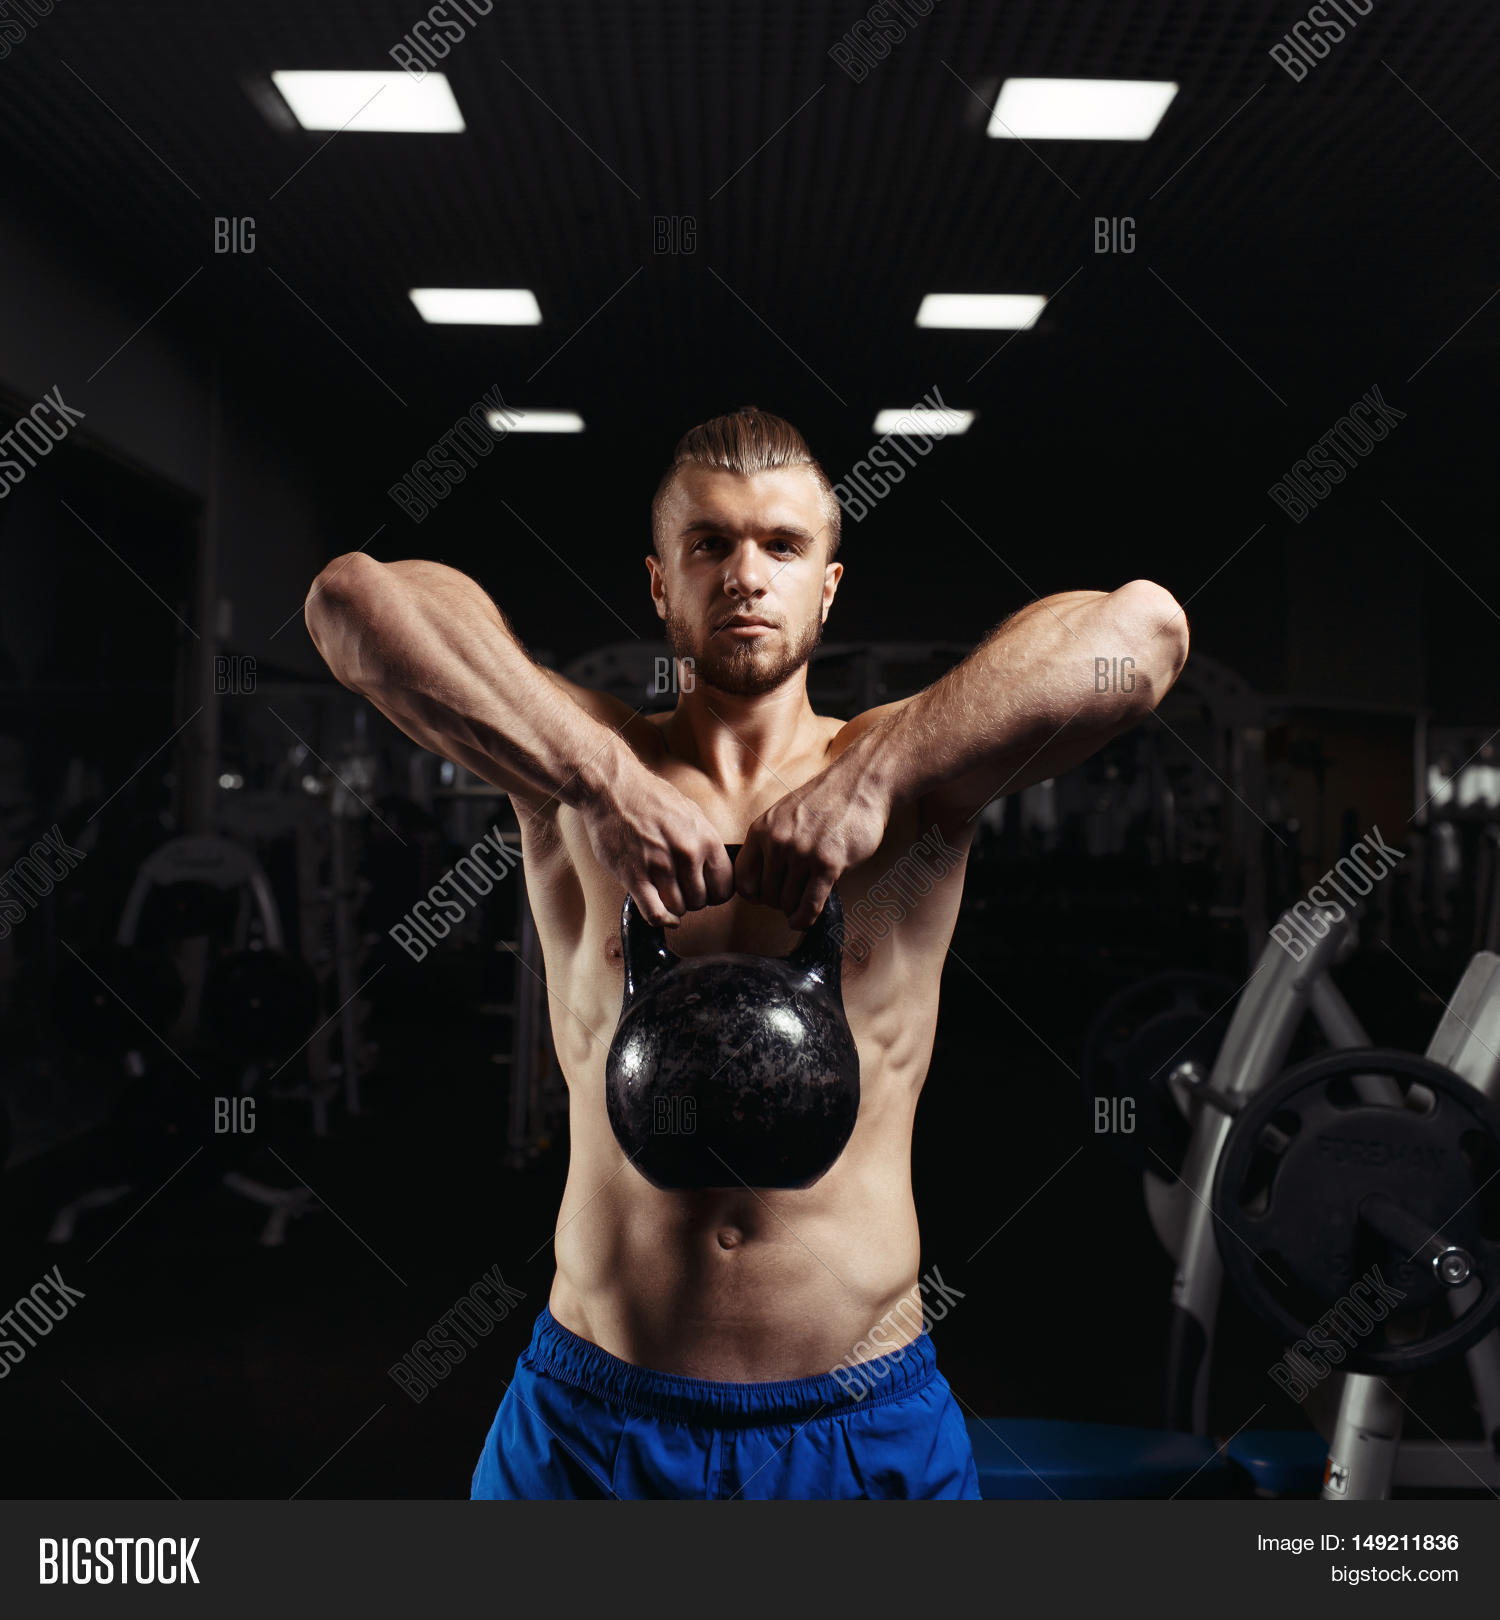 Kettlebell Bodybuilding Fitness Man Doing Image Photo Free Trial Bigstock